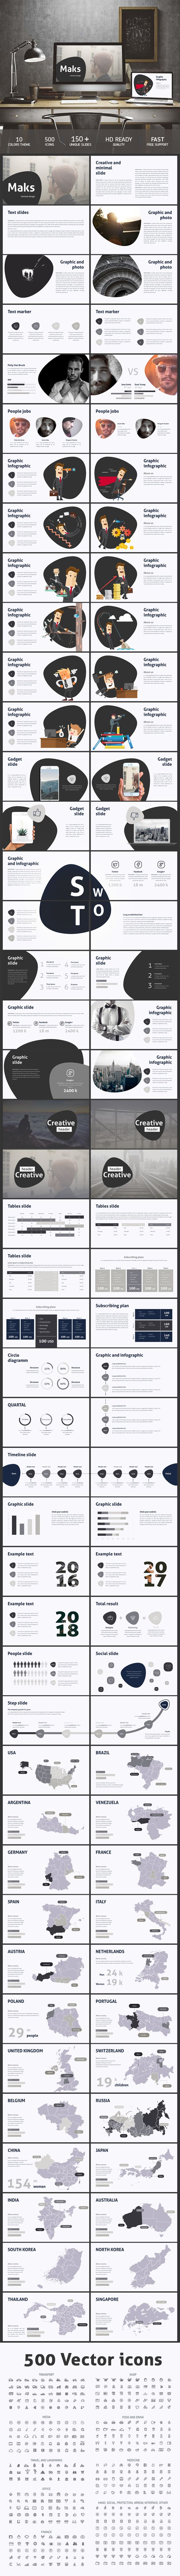 Maks Keynote template  #keynote #key #corporate #ppt • Download ➝ https://graphicriver.net/item/maks-keynote-template/18740282?ref=pxcr